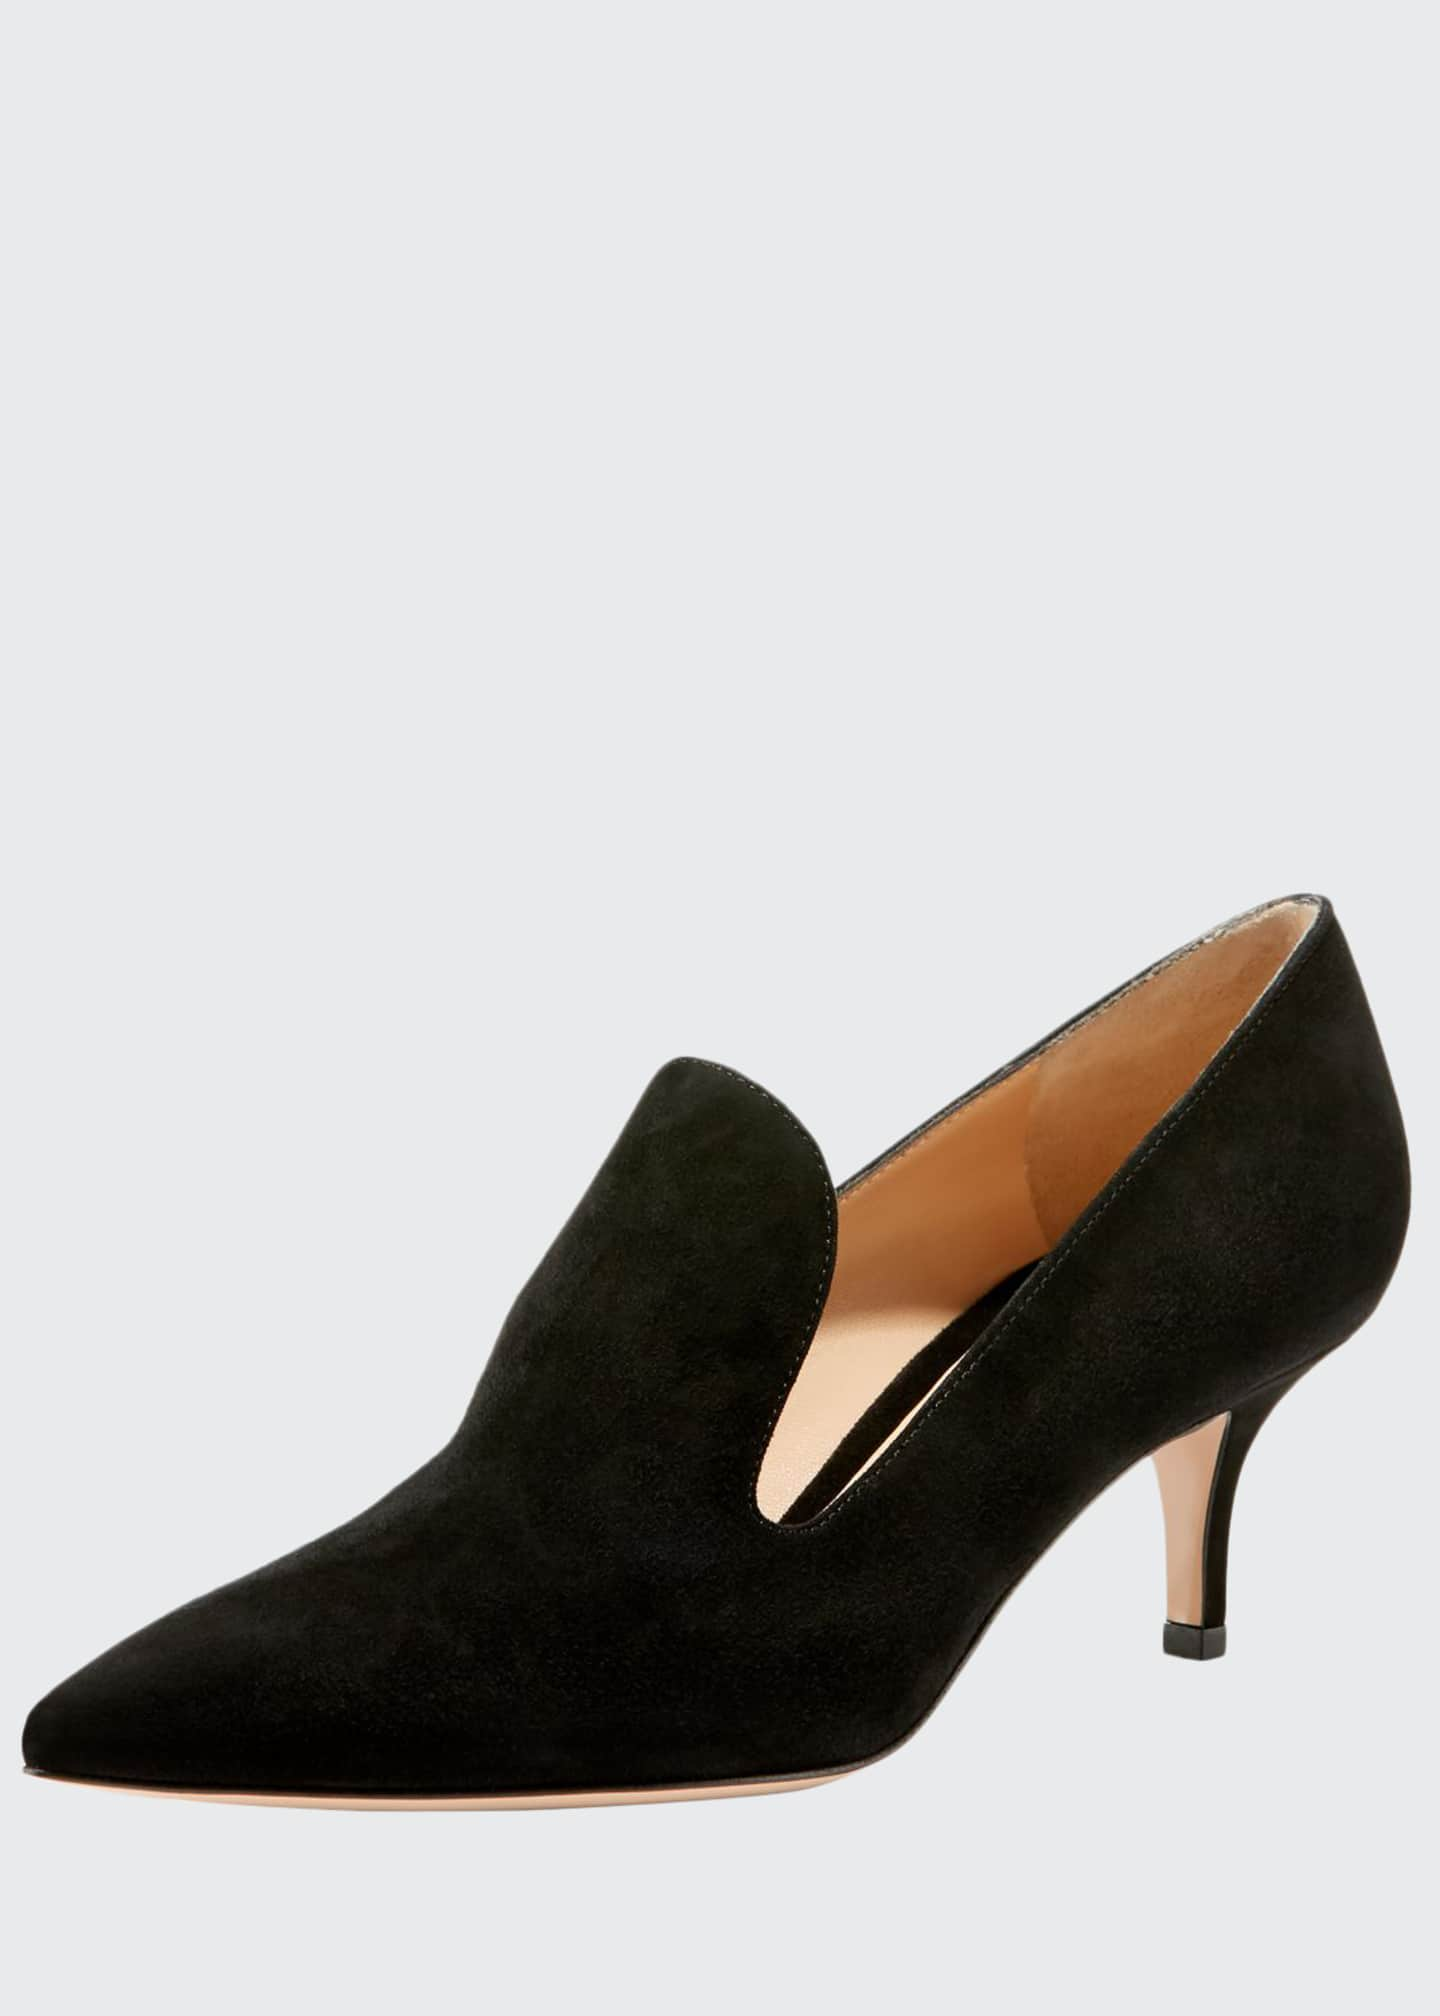 Gianvito Rossi Suede Loafer-Style Pumps